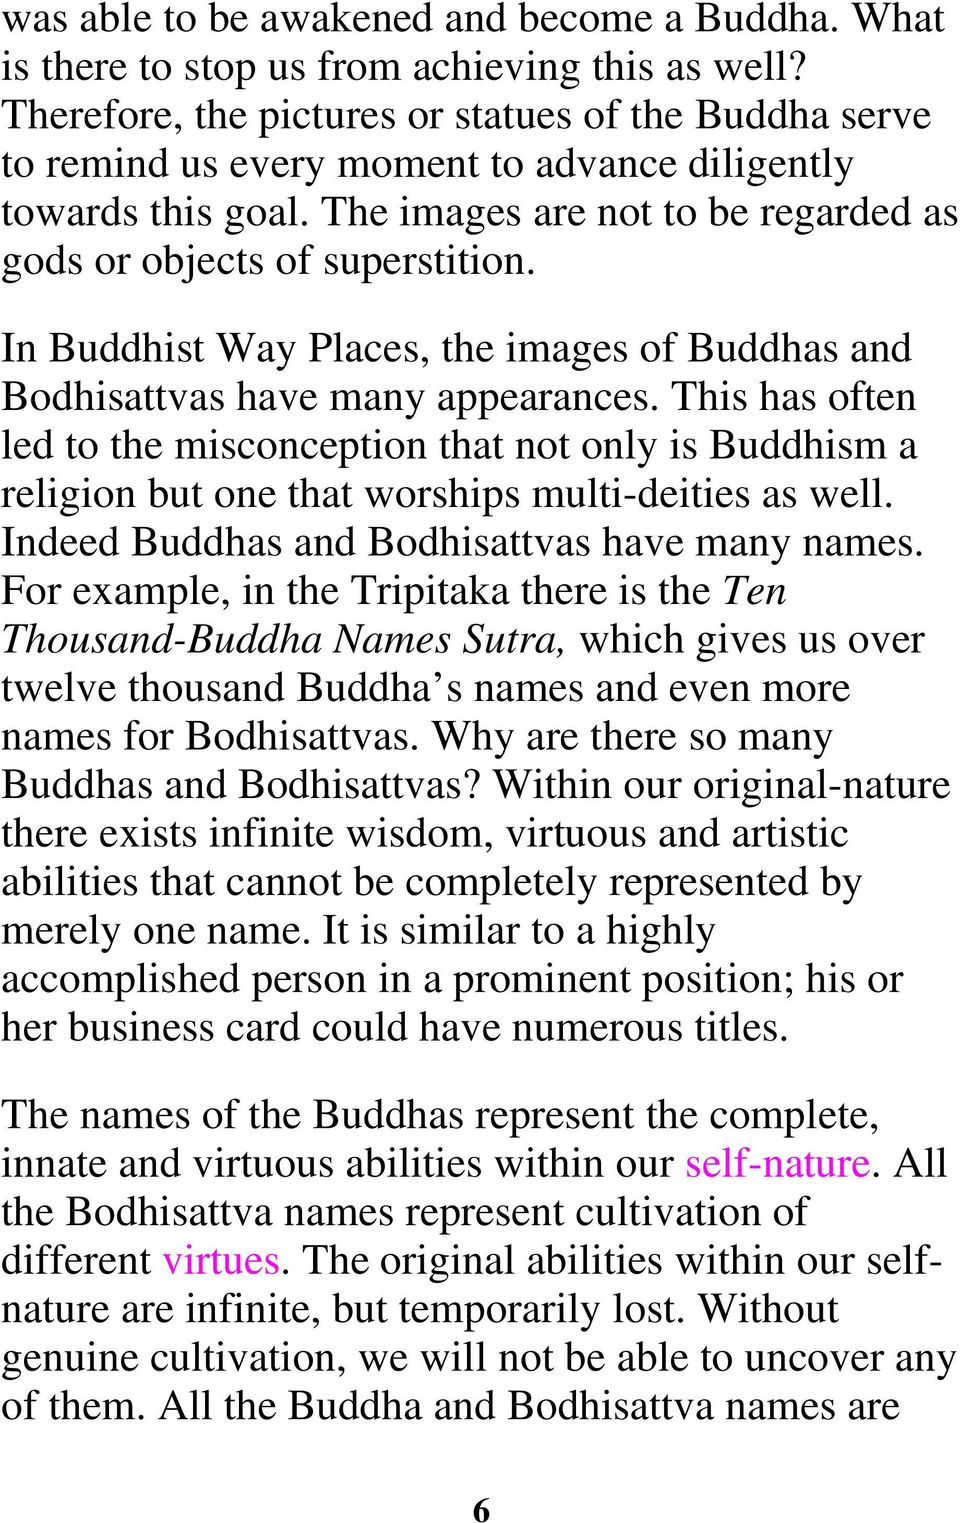 In Buddhist Way Places, the images of Buddhas and Bodhisattvas have many appearances.